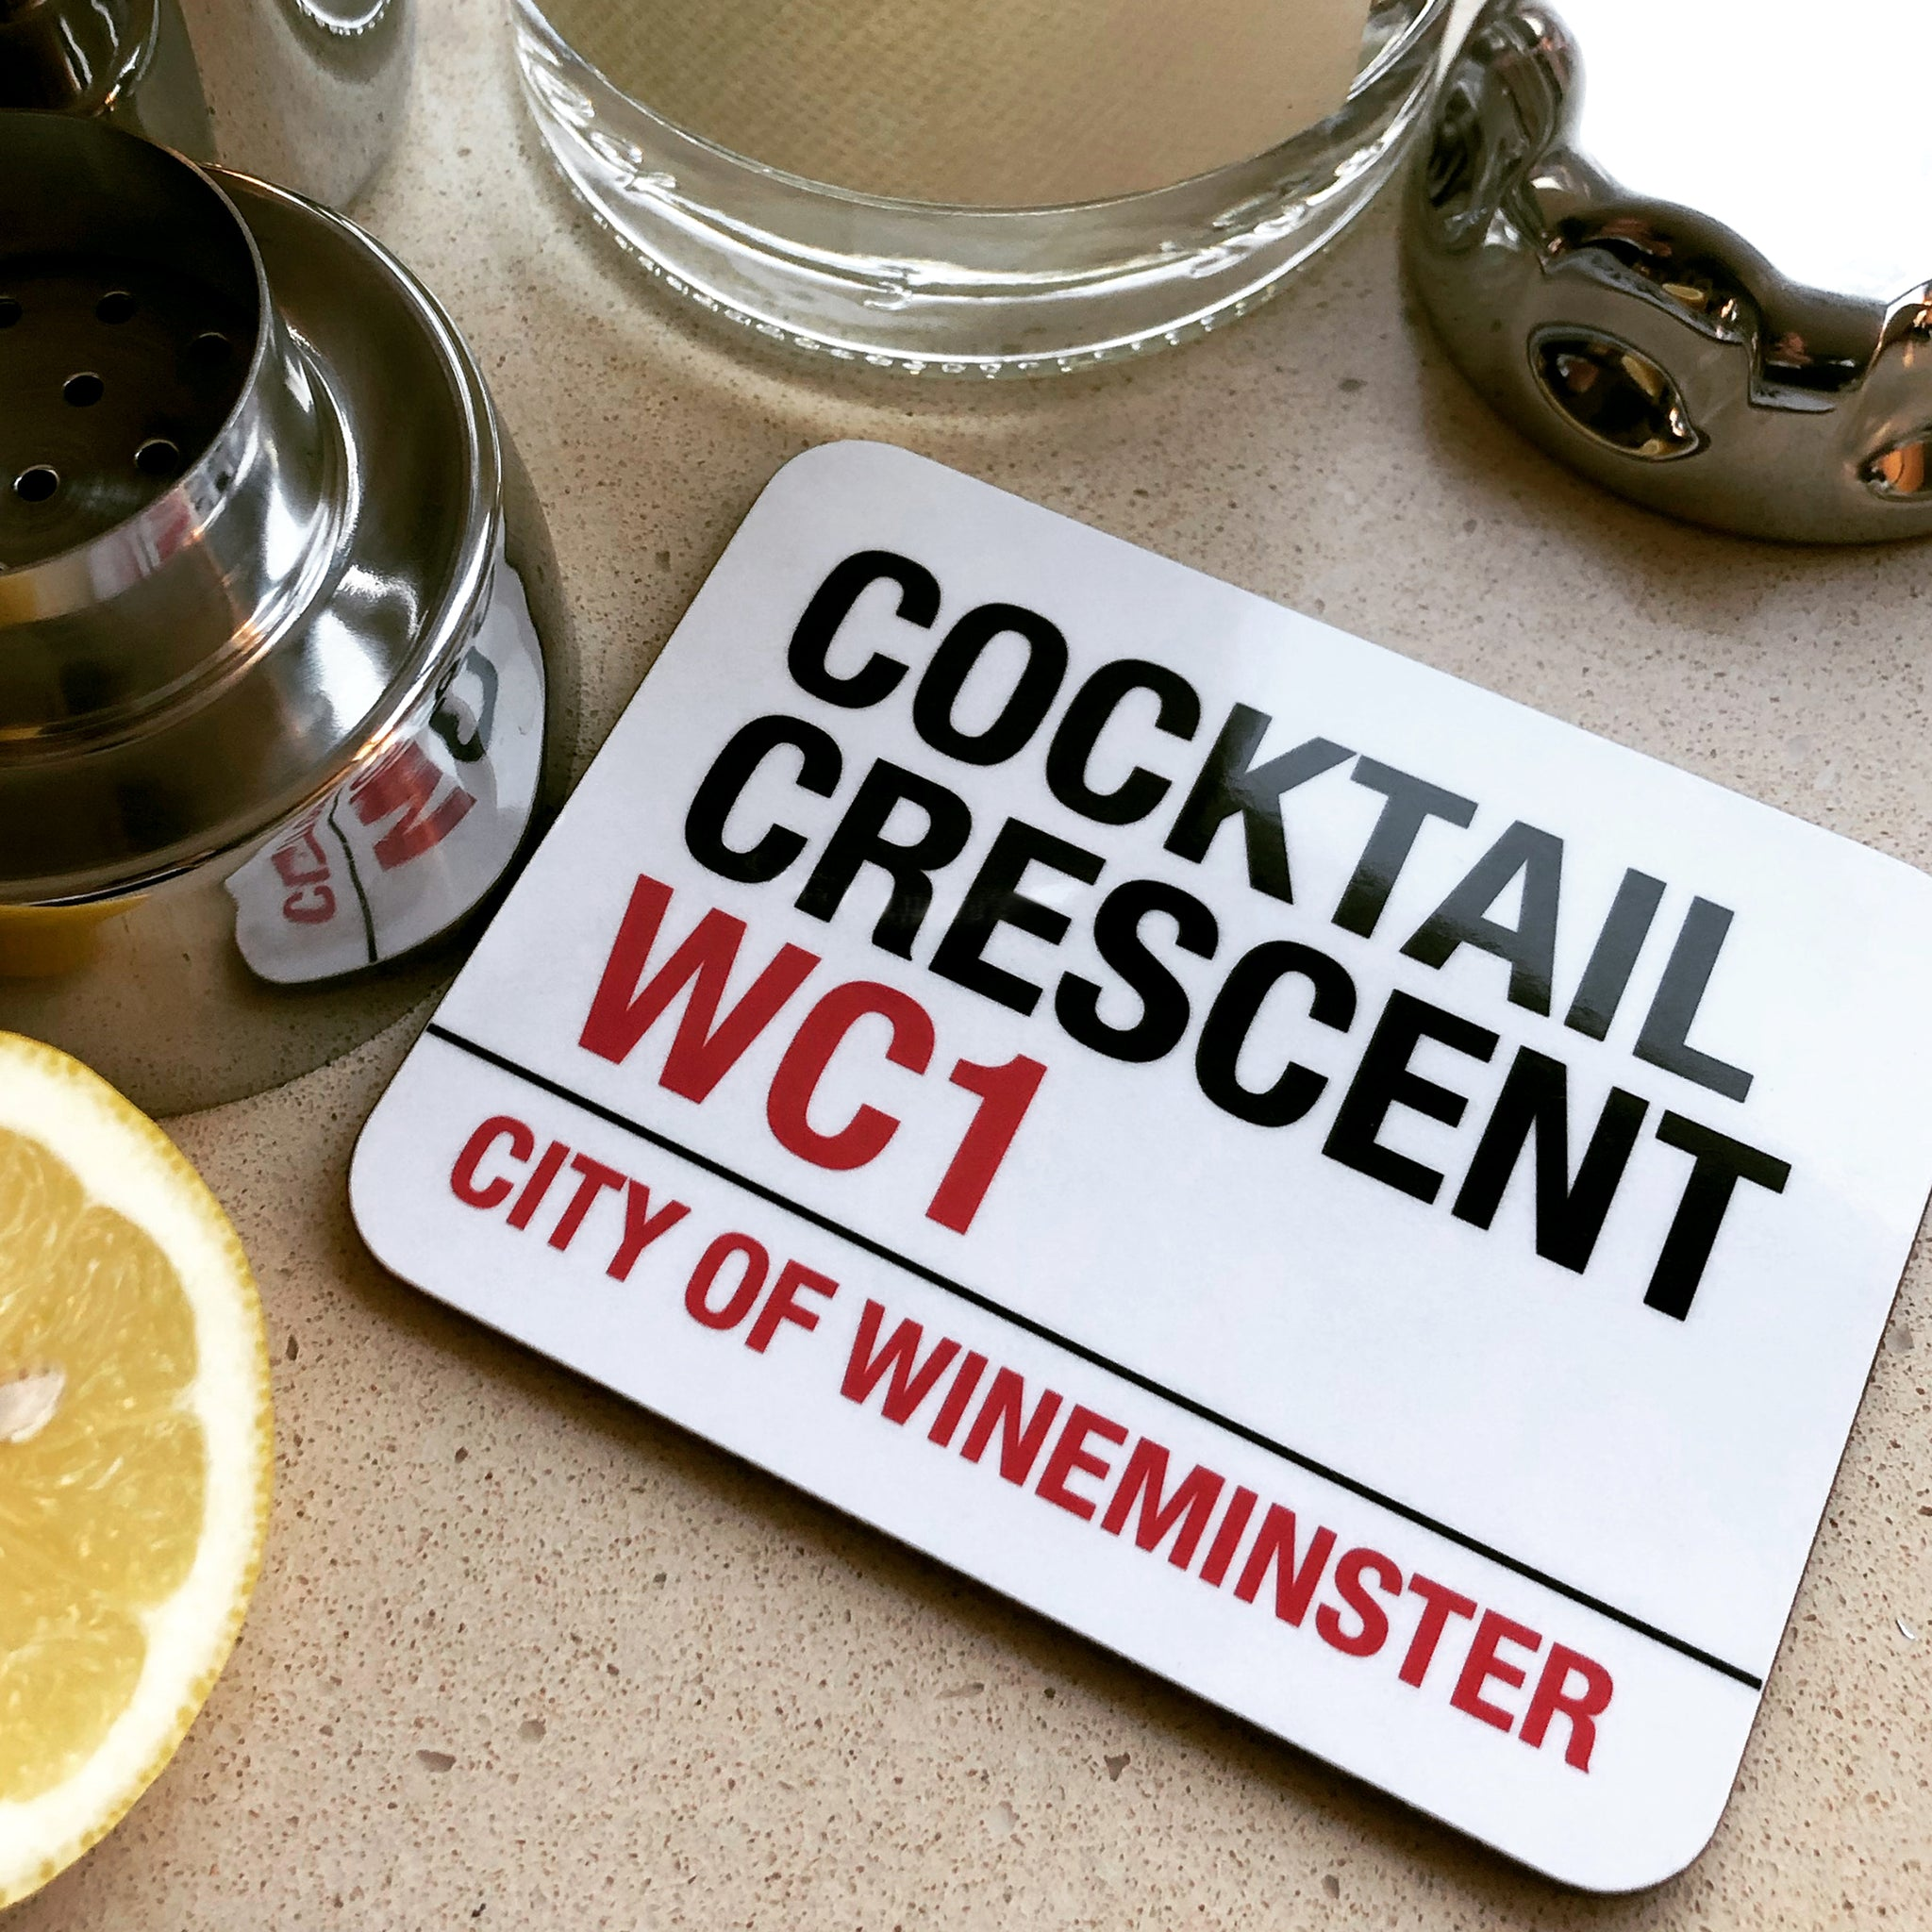 Cocktail Crescent Wineminster Coaster